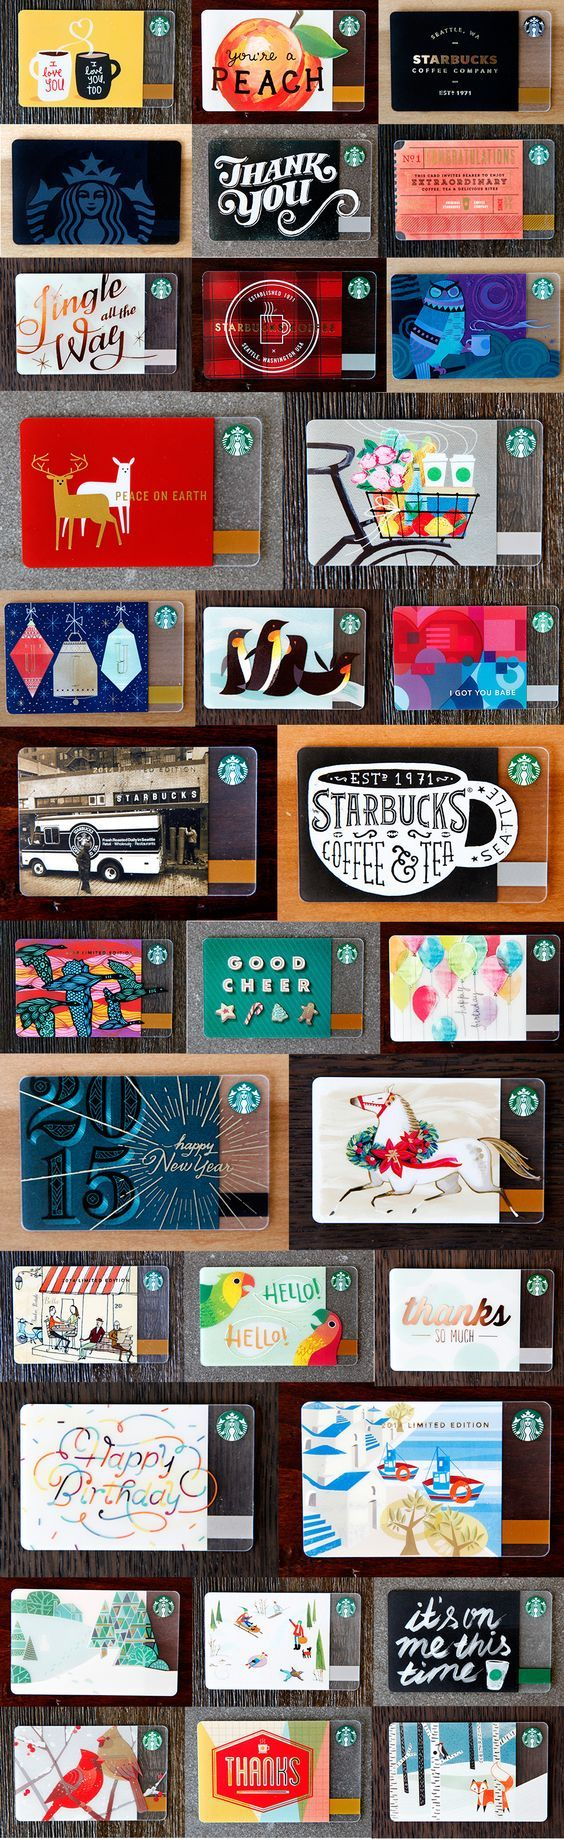 A glimpse at the Starbucks 2014 Holiday Card Collection. #StarbucksCard: